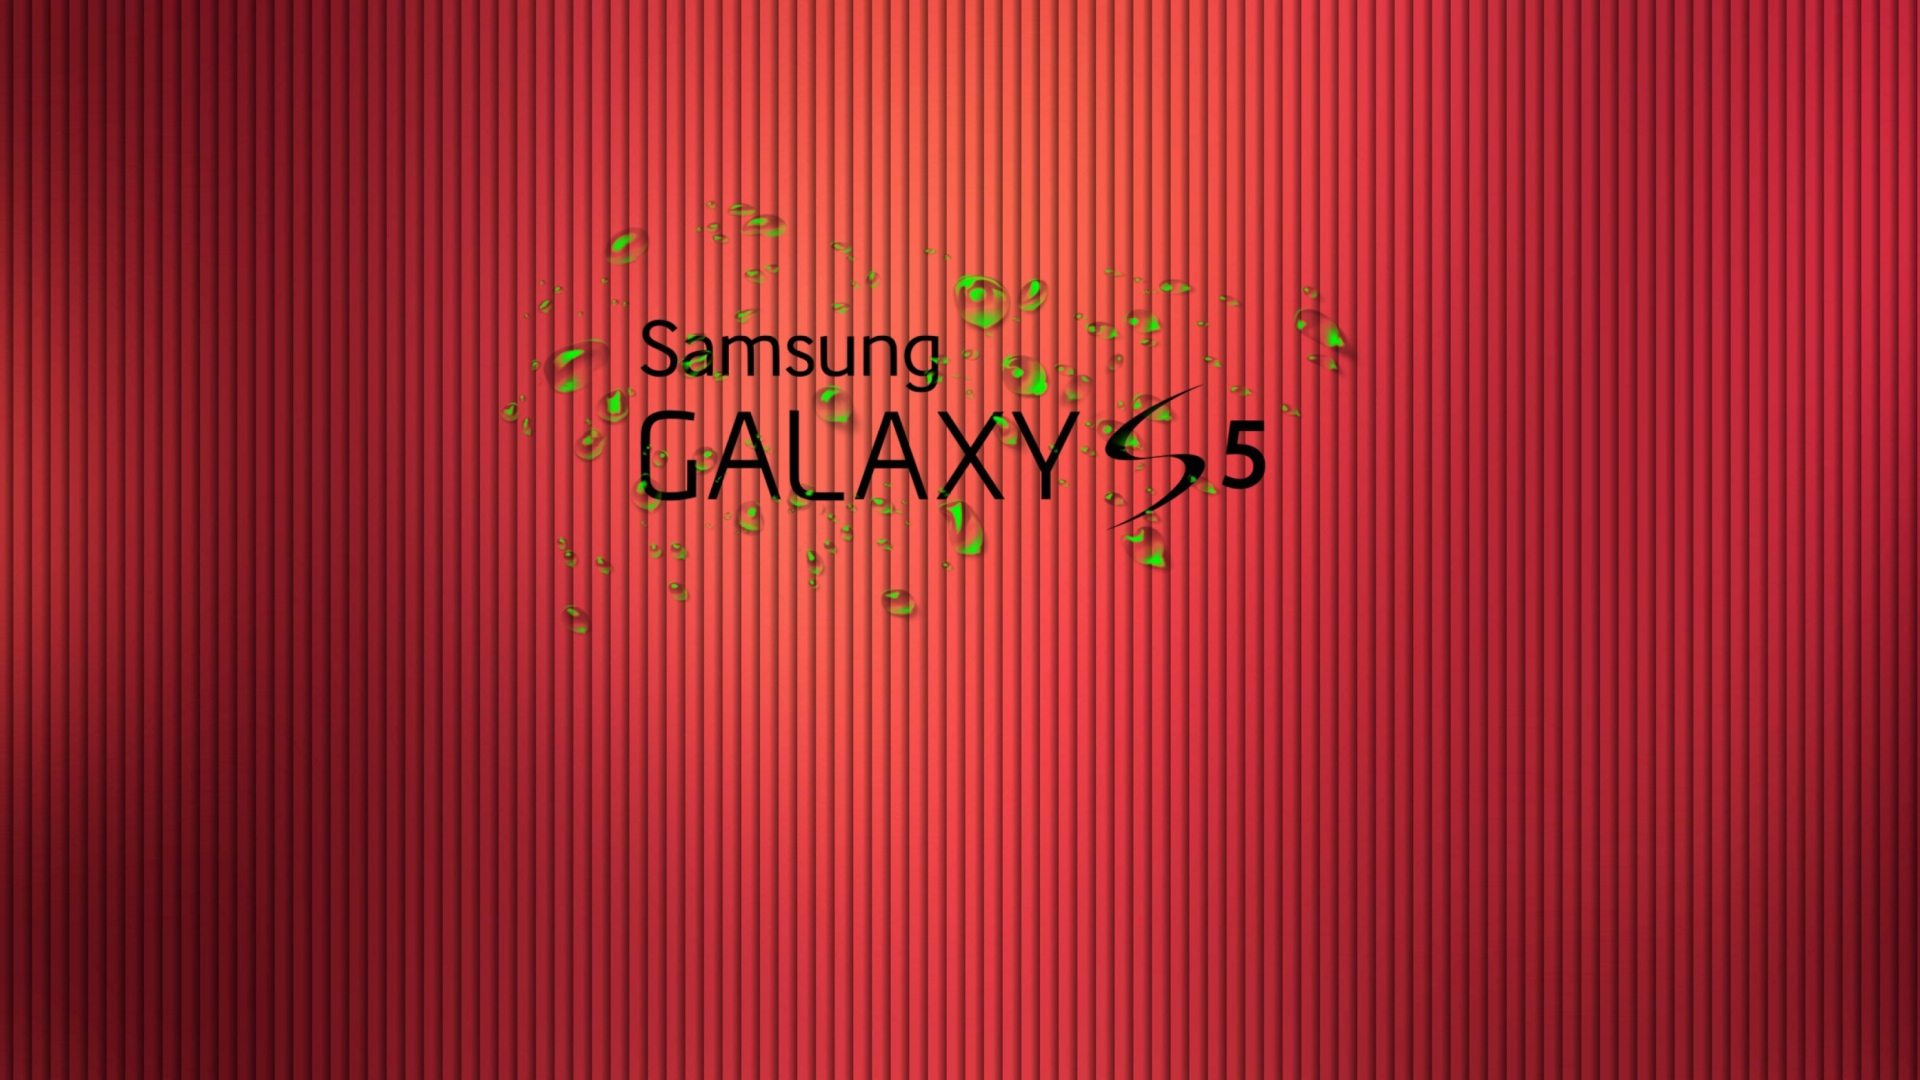 Galaxy S5 wallpaper 1920x1080